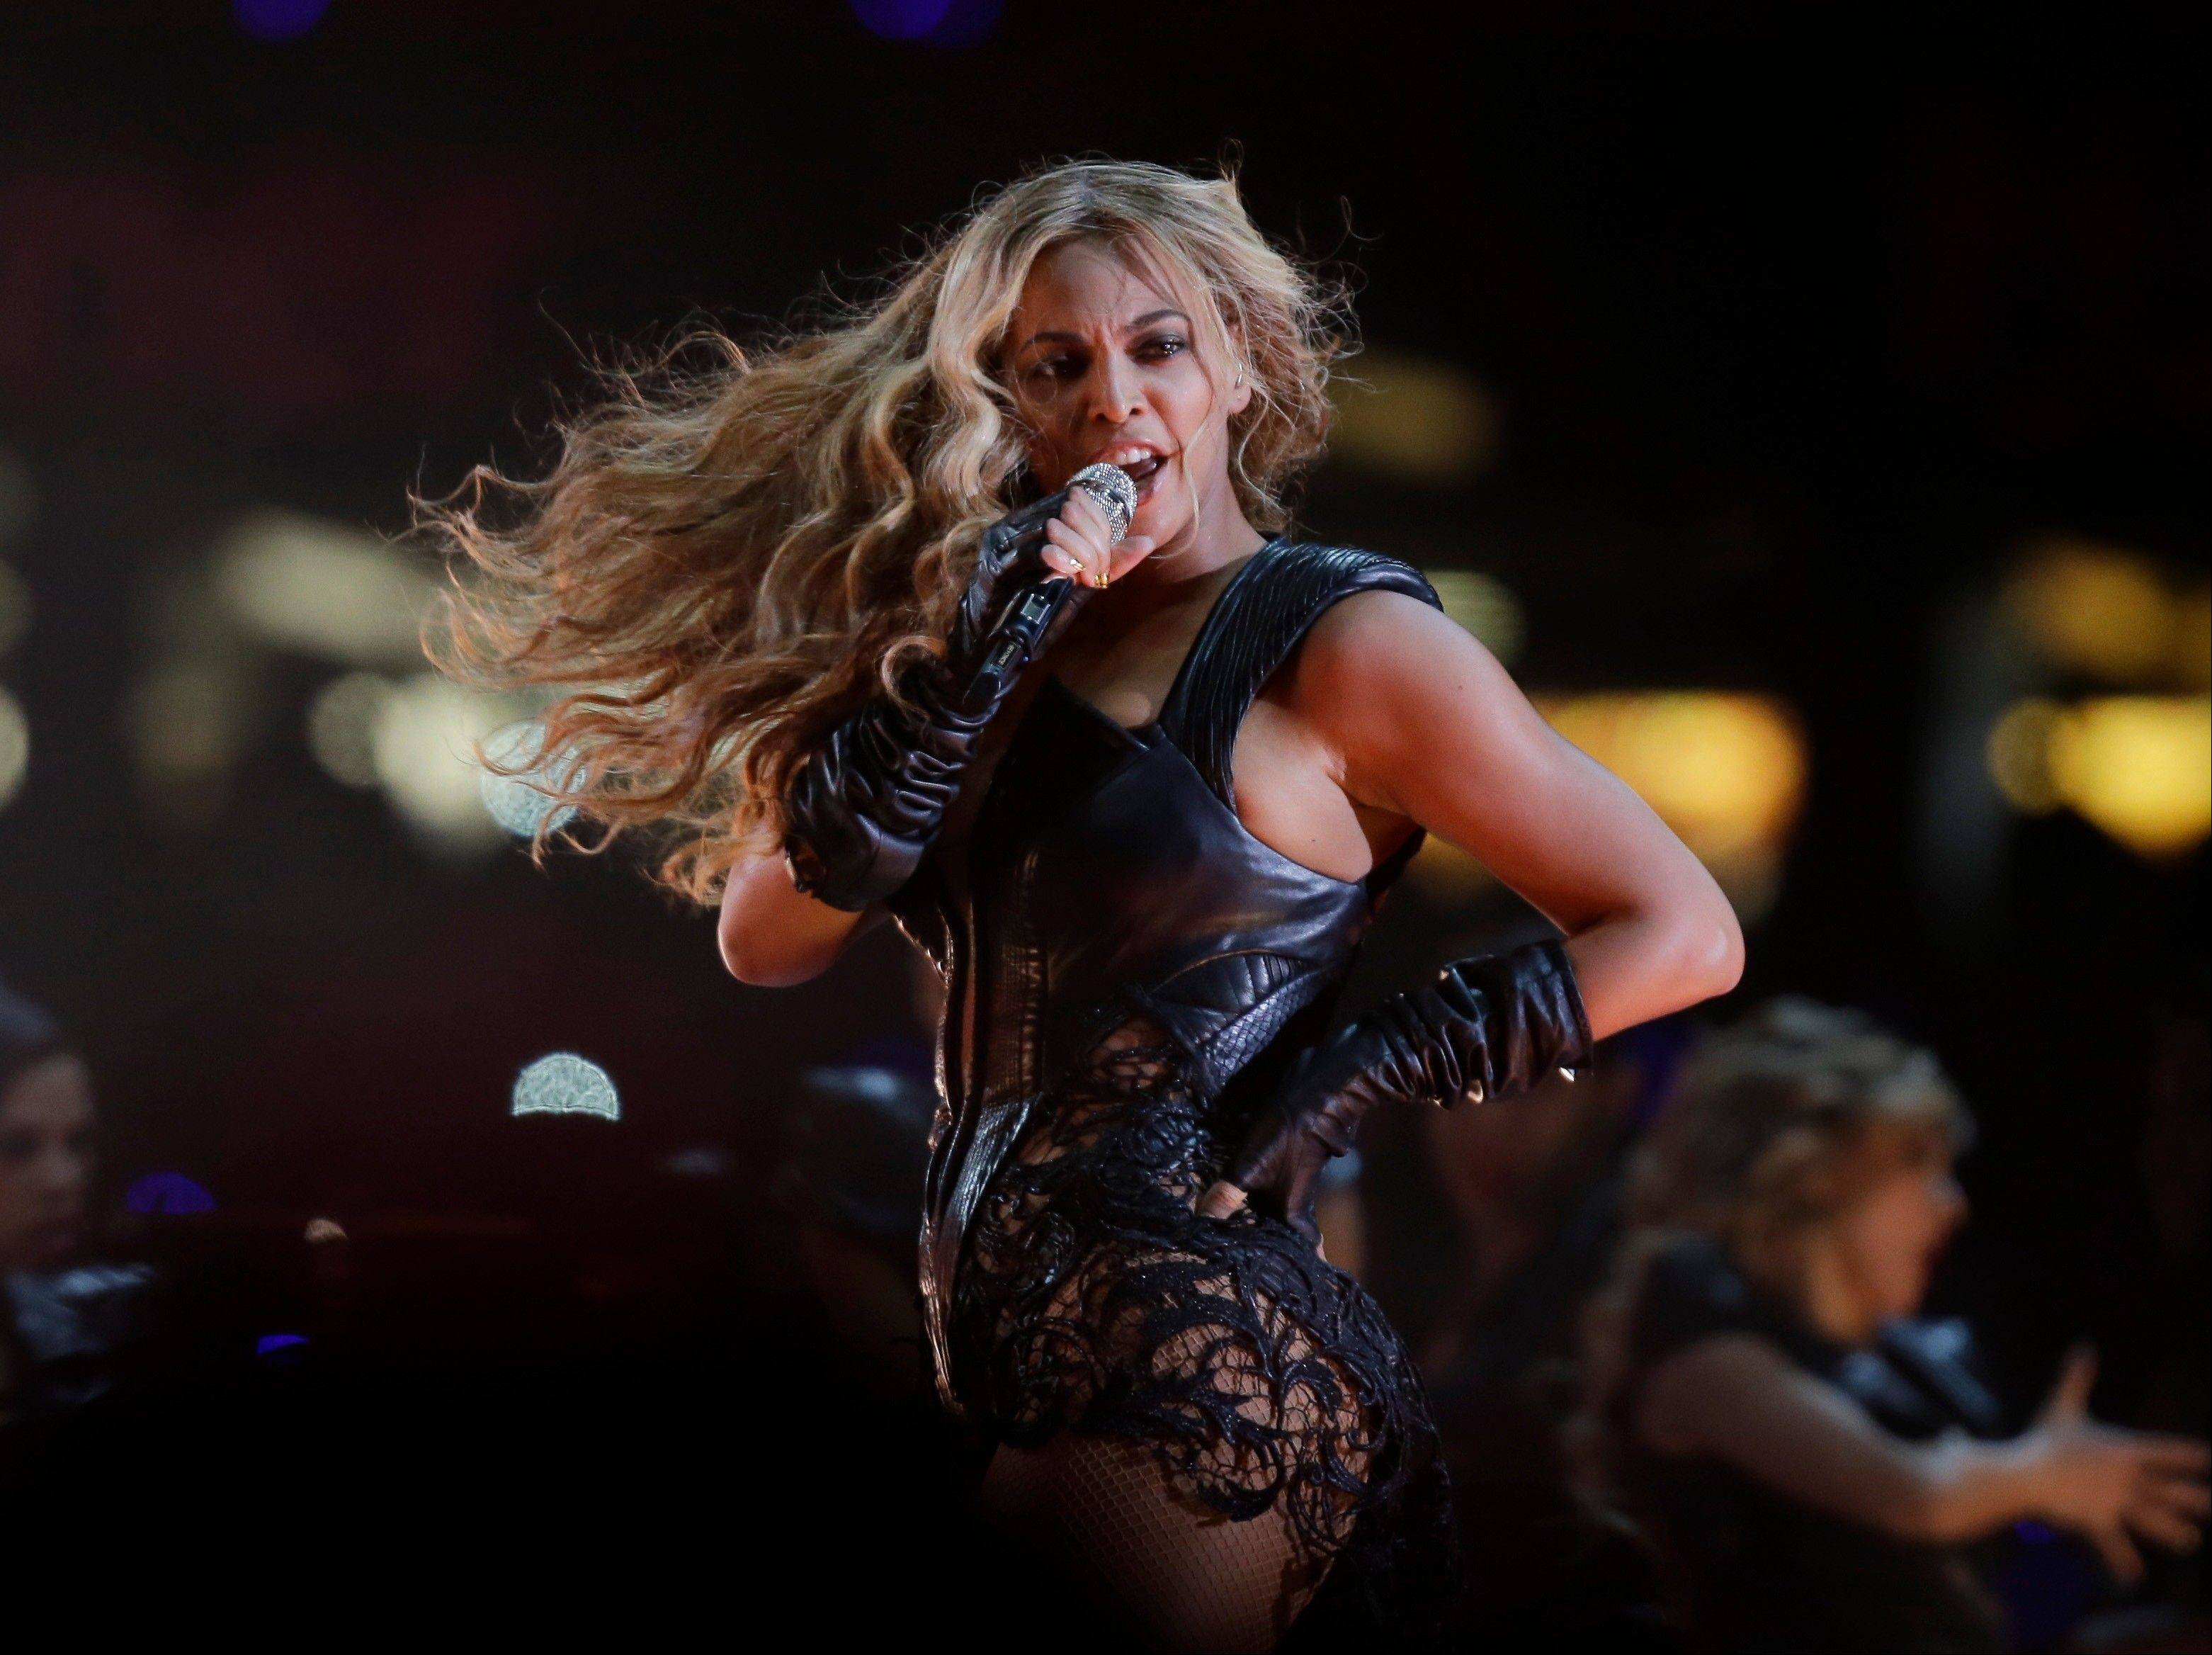 Beyoncé performs during the halftime show of Super Bowl XLVII on Sunday.